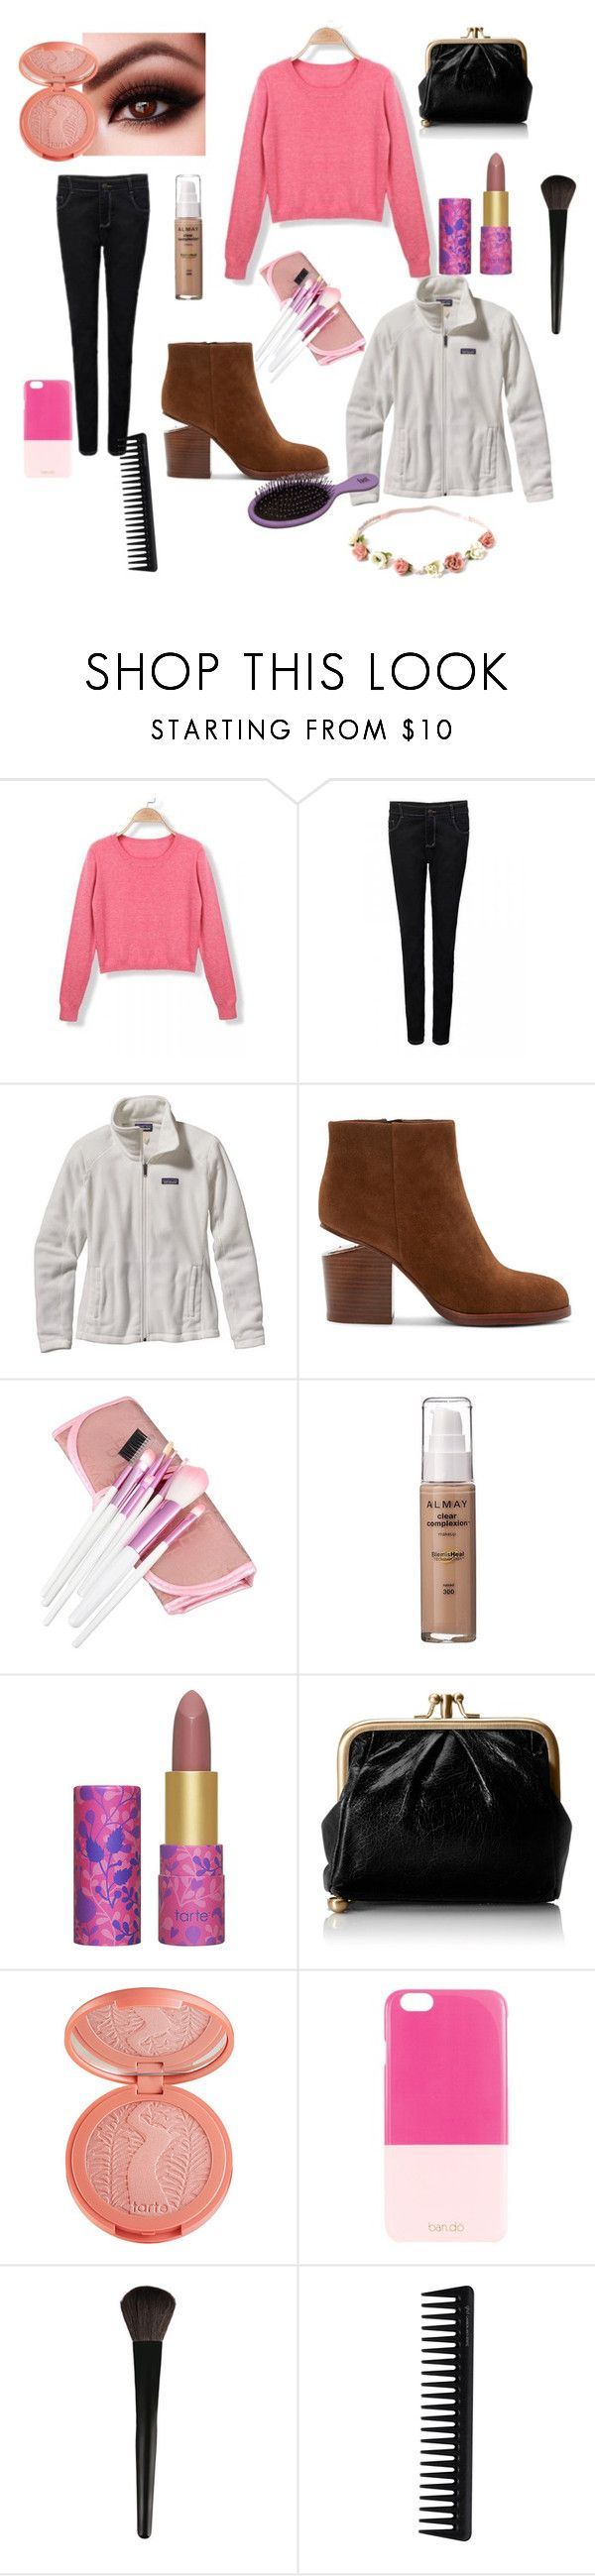 """Friday night at the movies"" by julietlane ❤ liked on Polyvore featuring beauty, Patagonia, Alexander Wang, Zodaca, tarte, HOBO, ban.do, INIKA and GHD"